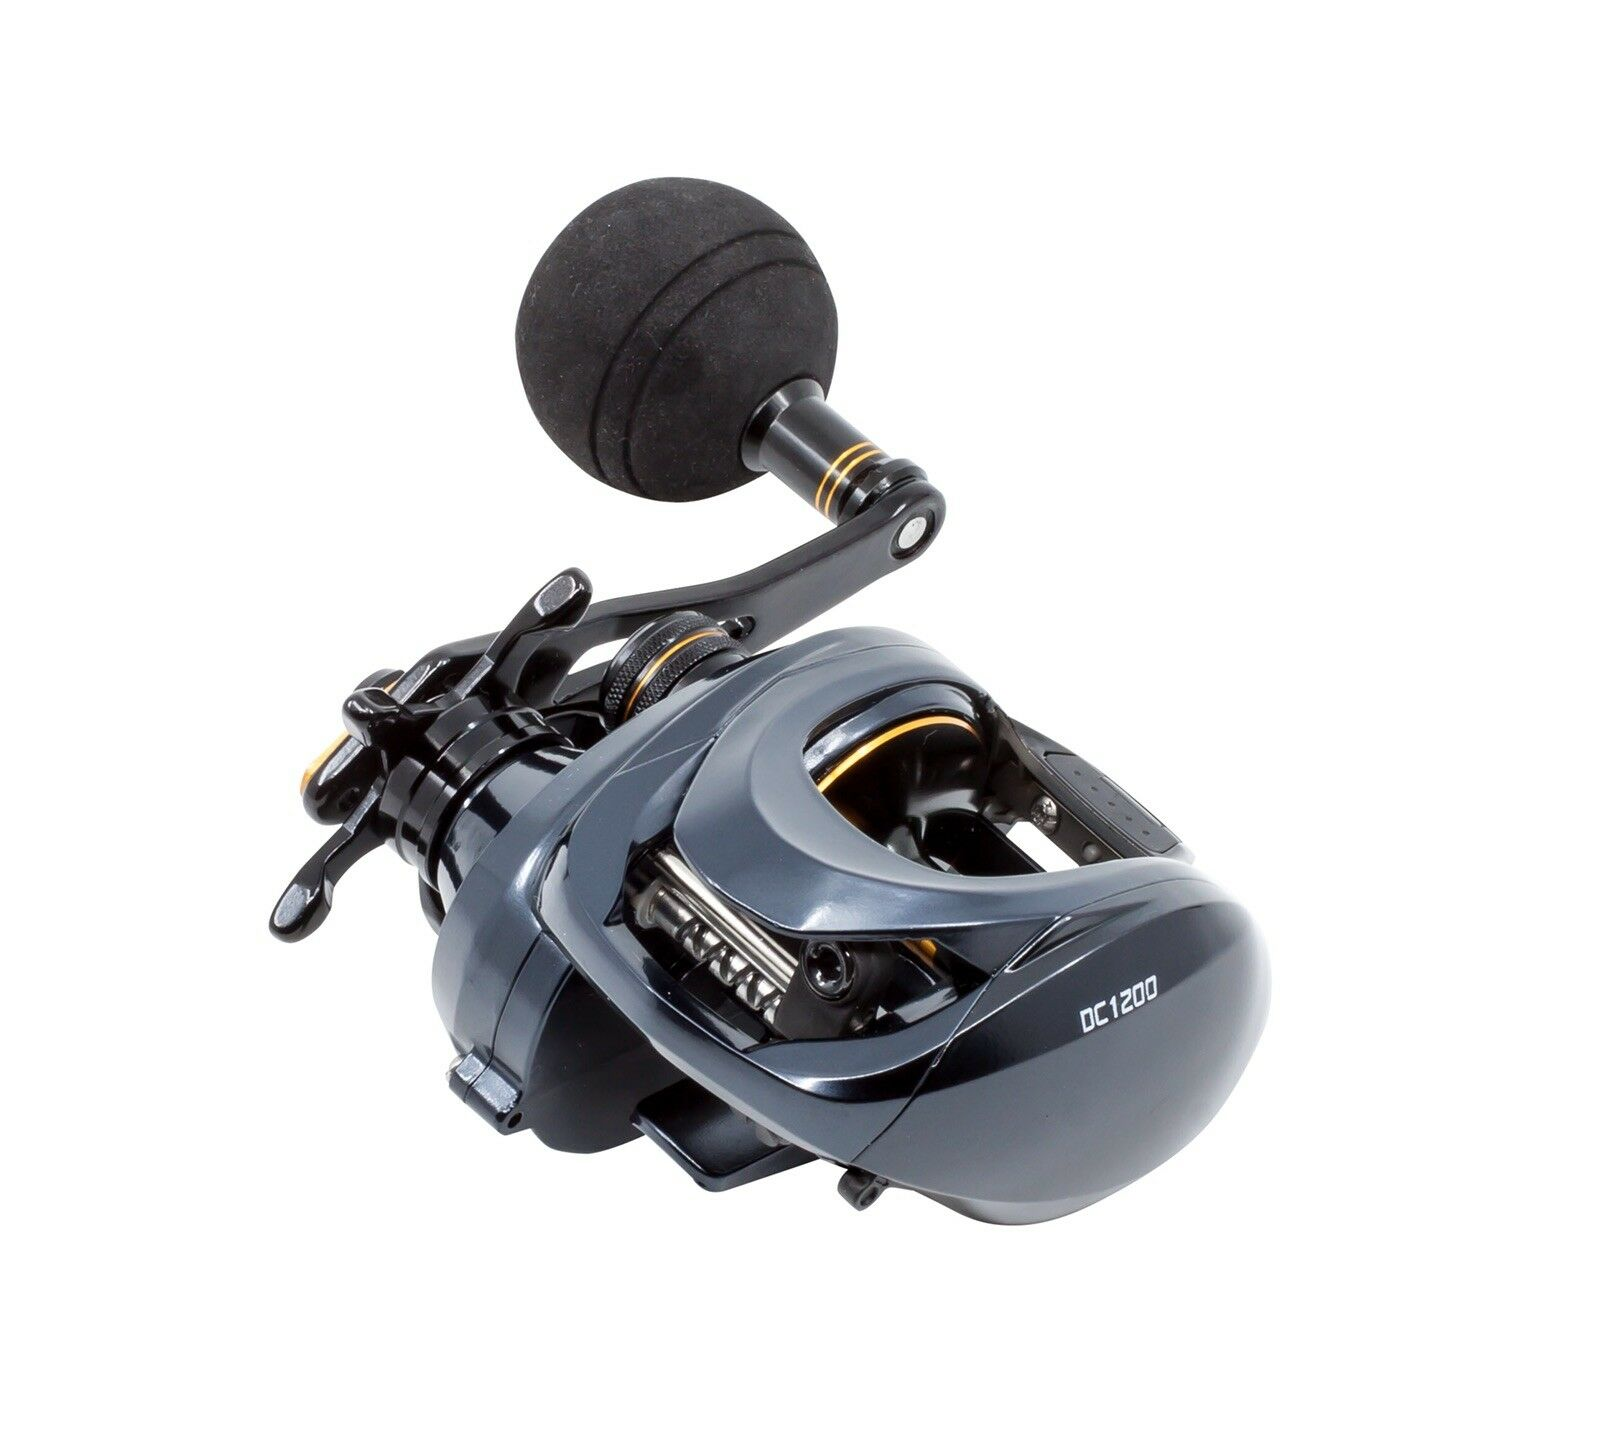 Loki DC12000 Large Bait Caster 6 3.1 baitcasting fishing reel Big Game Inshore